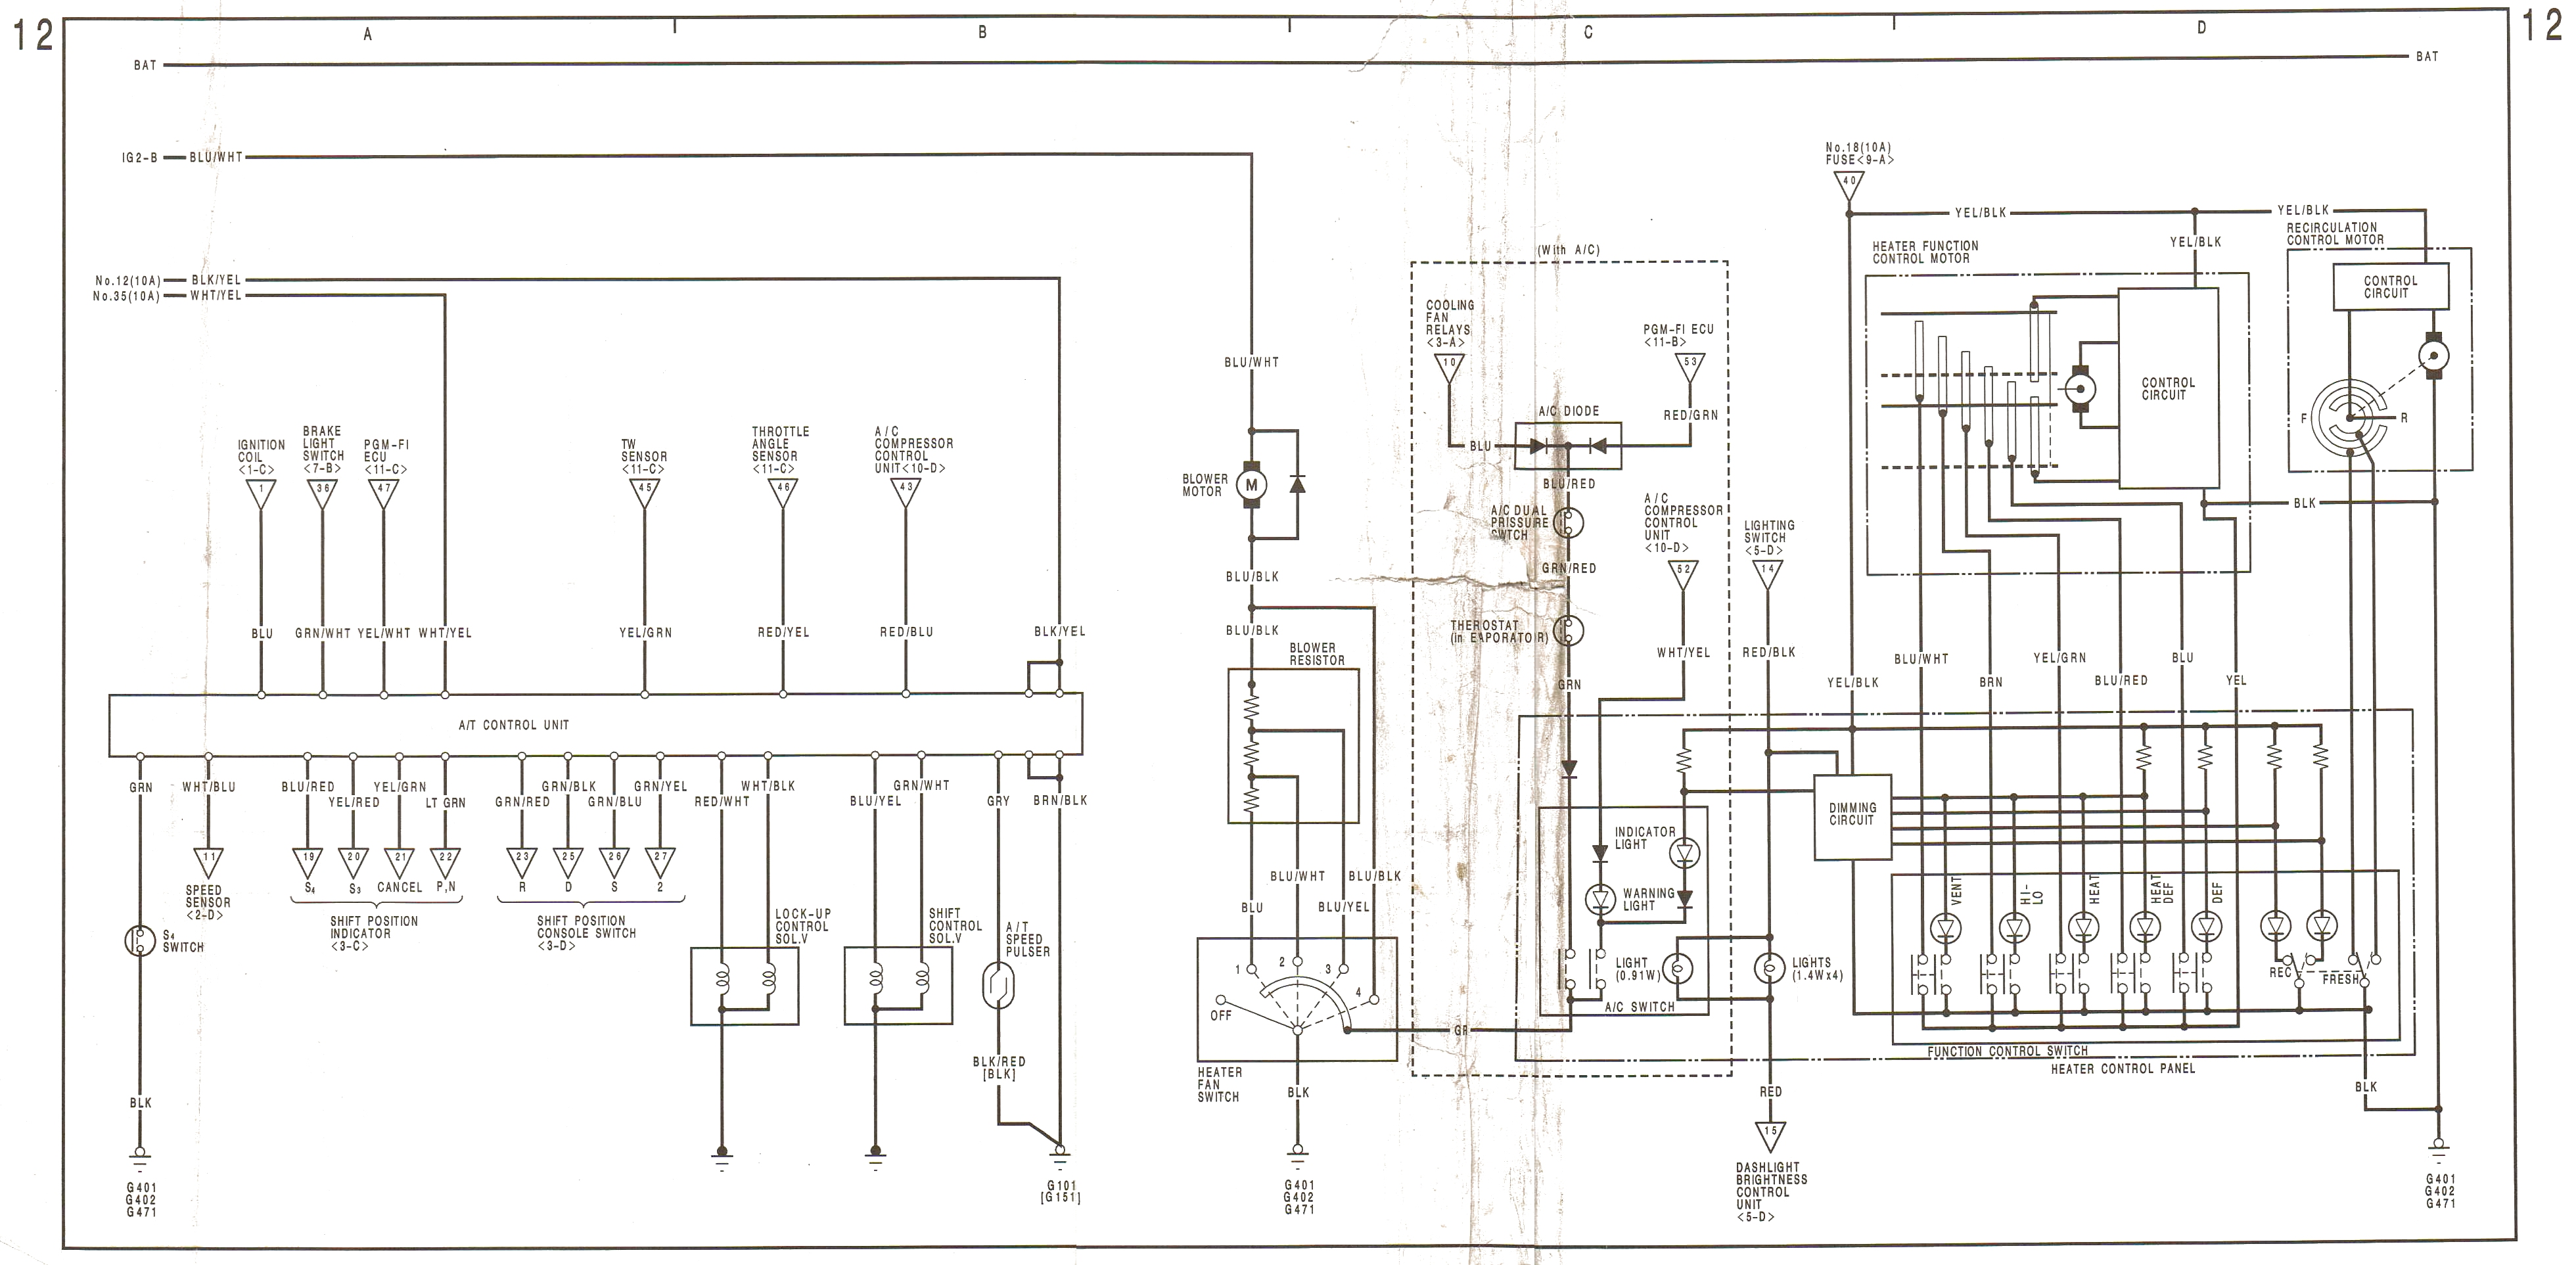 1996 honda civic lx fuse box diagram ford ranger wiring 1999 prelude and